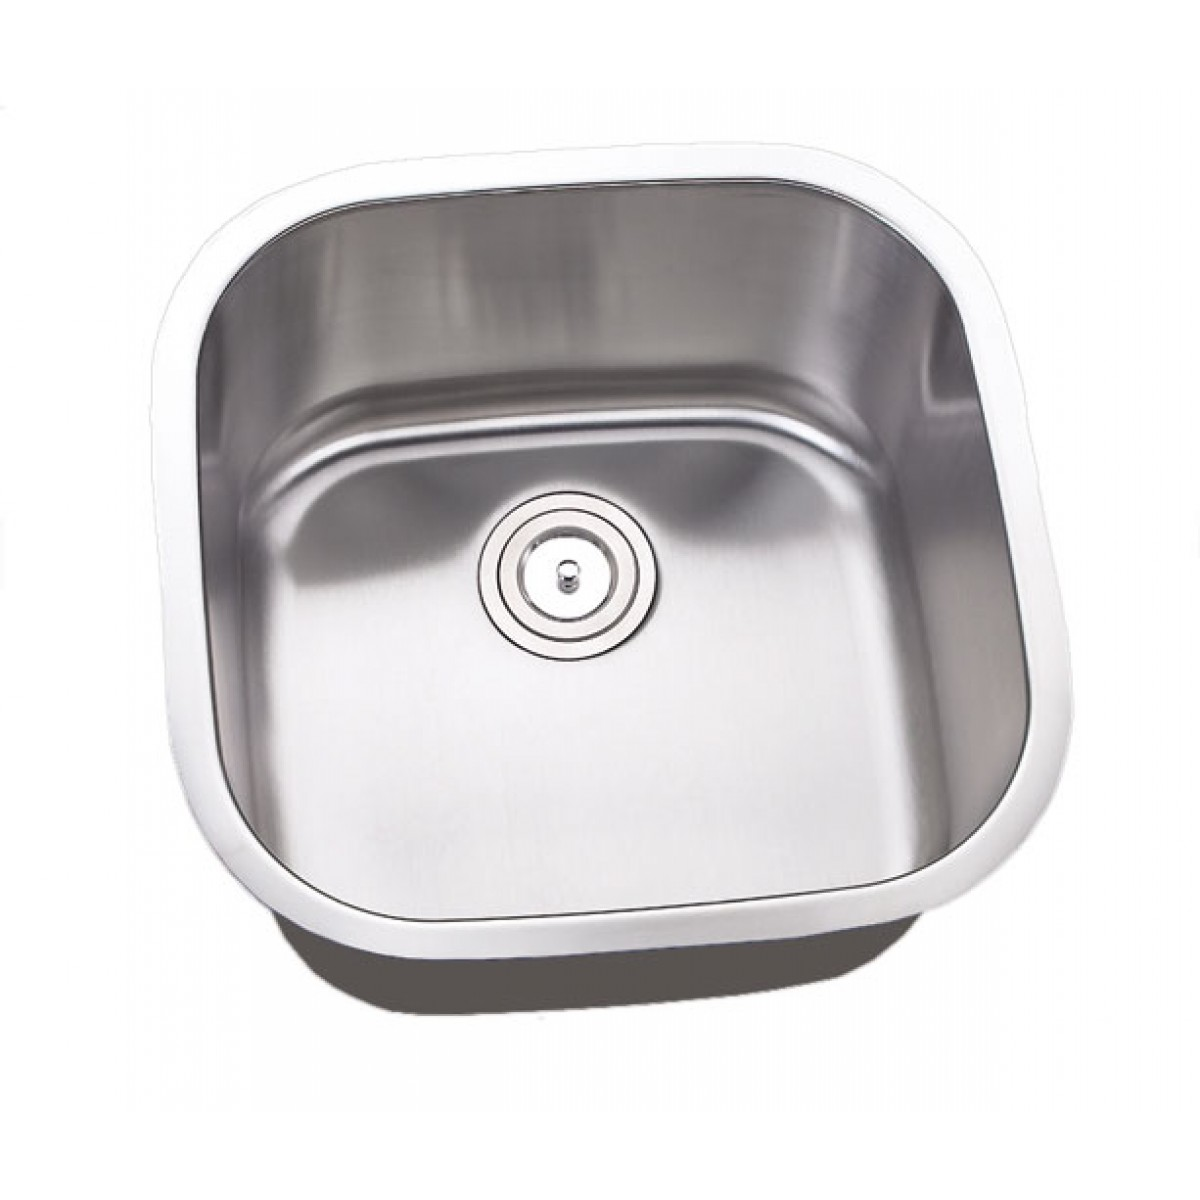 20 inch stainless steel undermount single bowl kitchen - Stainless steel kitchen sink accessories ...